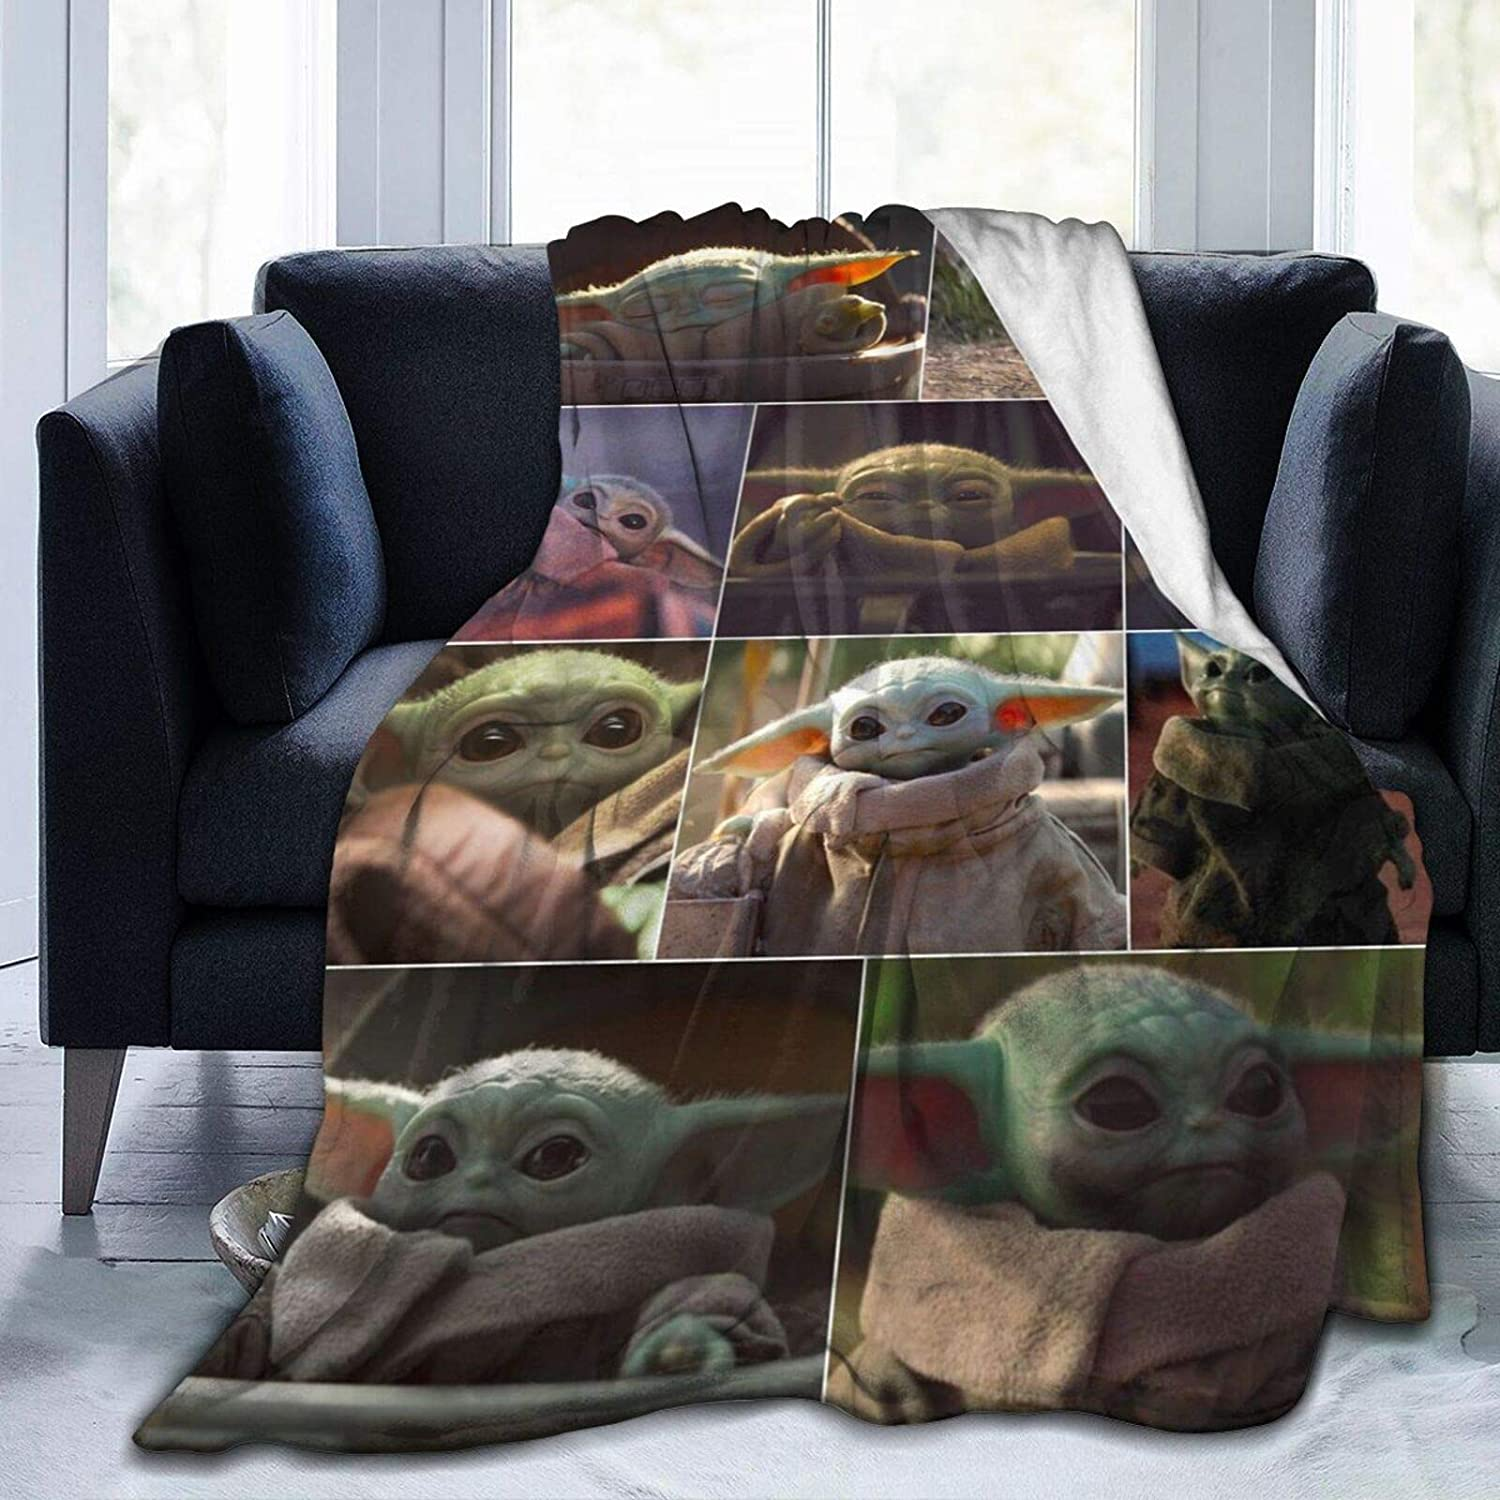 Baby Yoda Blanket All Season Super Soft Cozy Bed Sofa Blanket Air Conditioner Quilt for Kids Teenager Adults